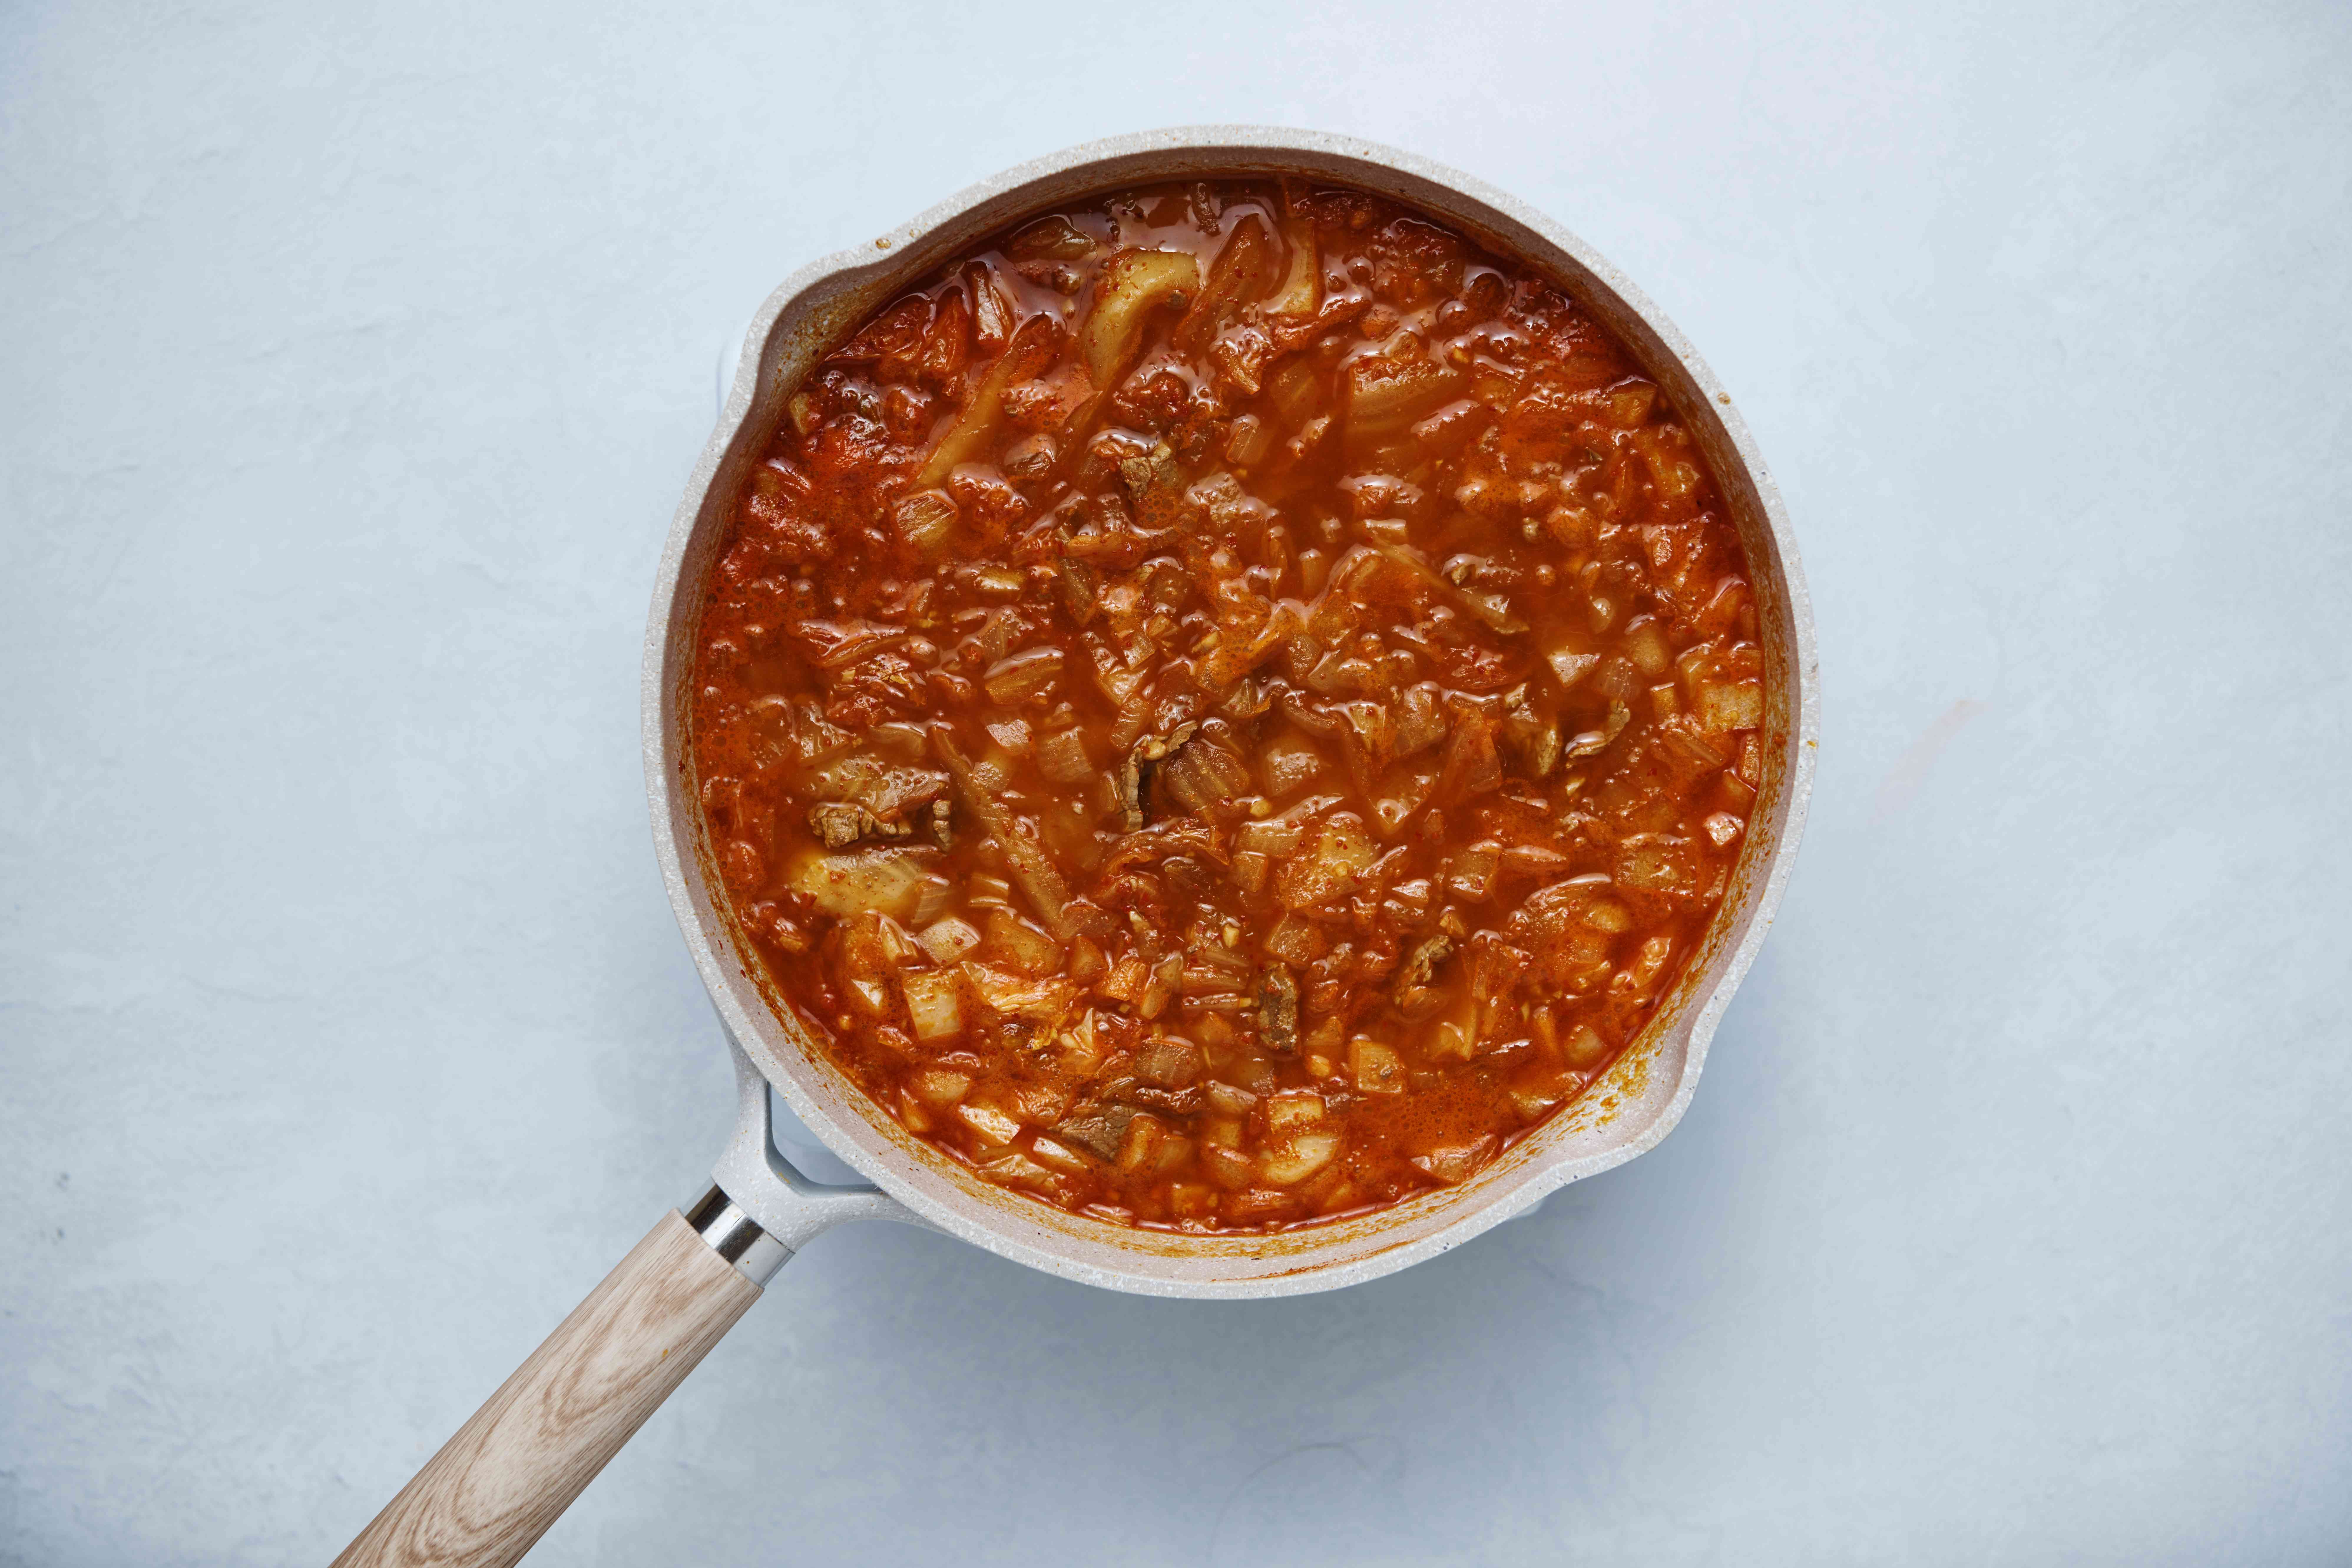 kimchi stew cooking in a pot